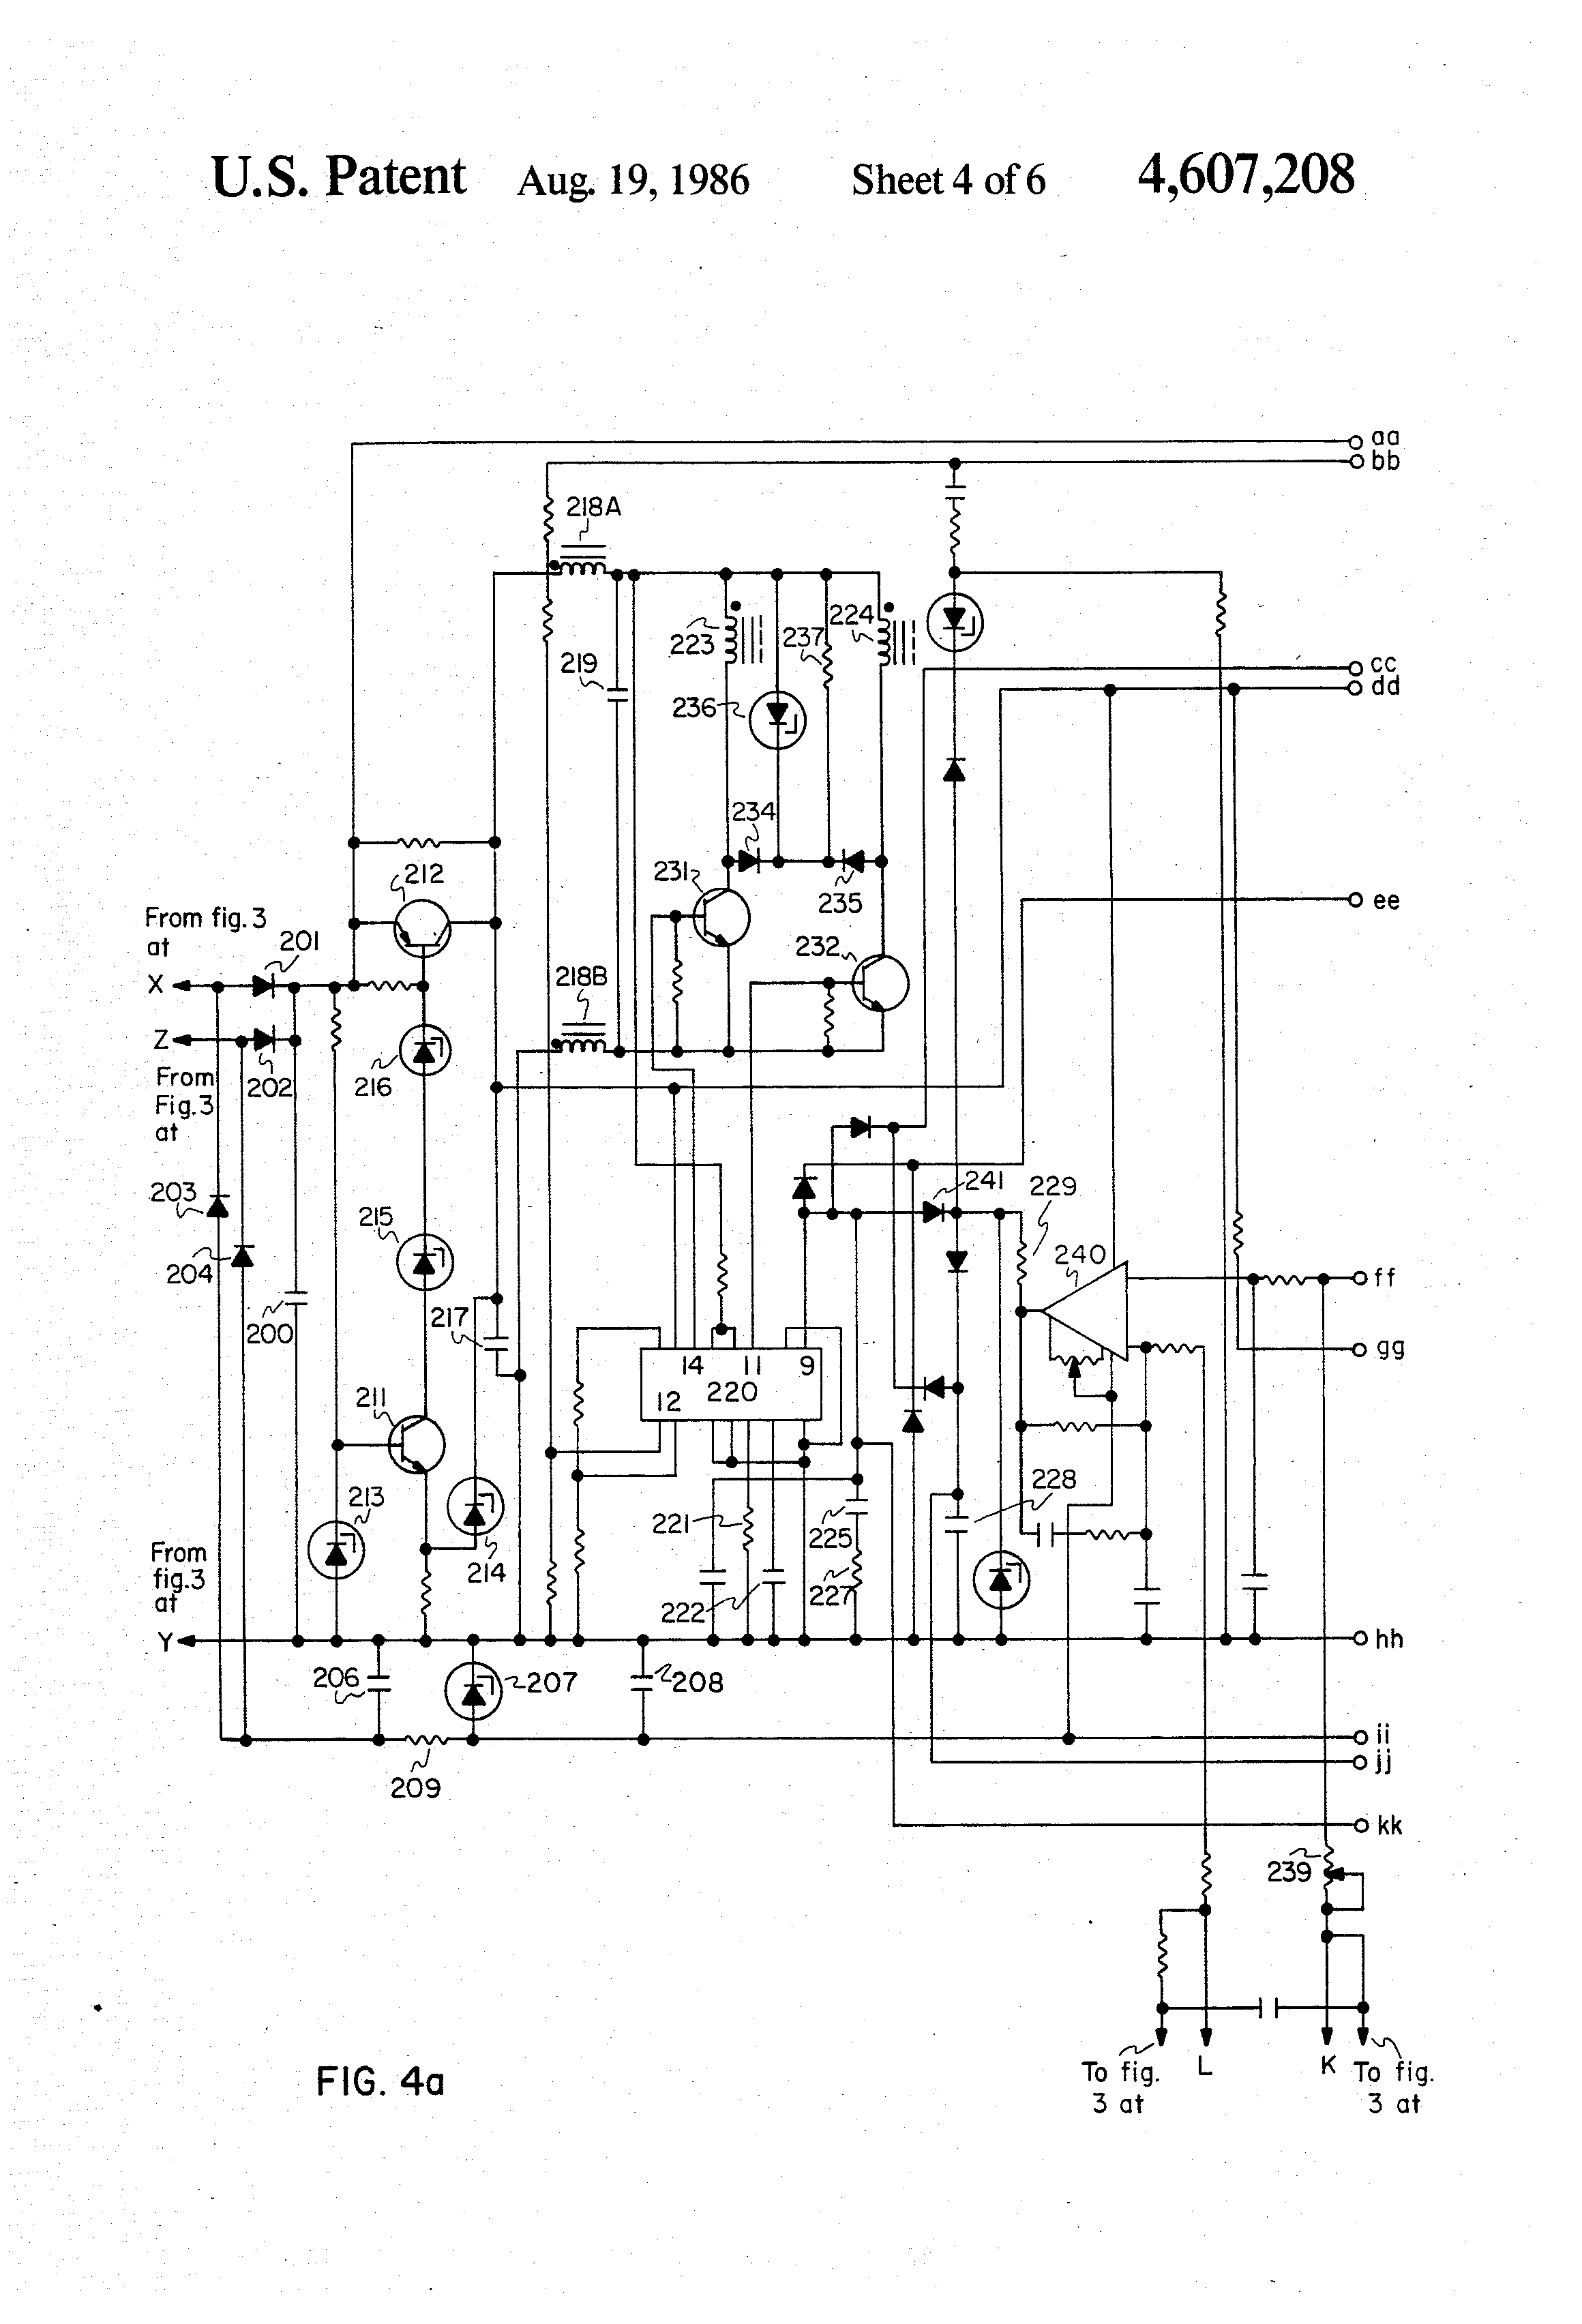 Triumph T25t Wiring Diagrams Library Schematic Diagram Detailed On Of This Motorcyclethis Schumacher Se 2158 Coleman